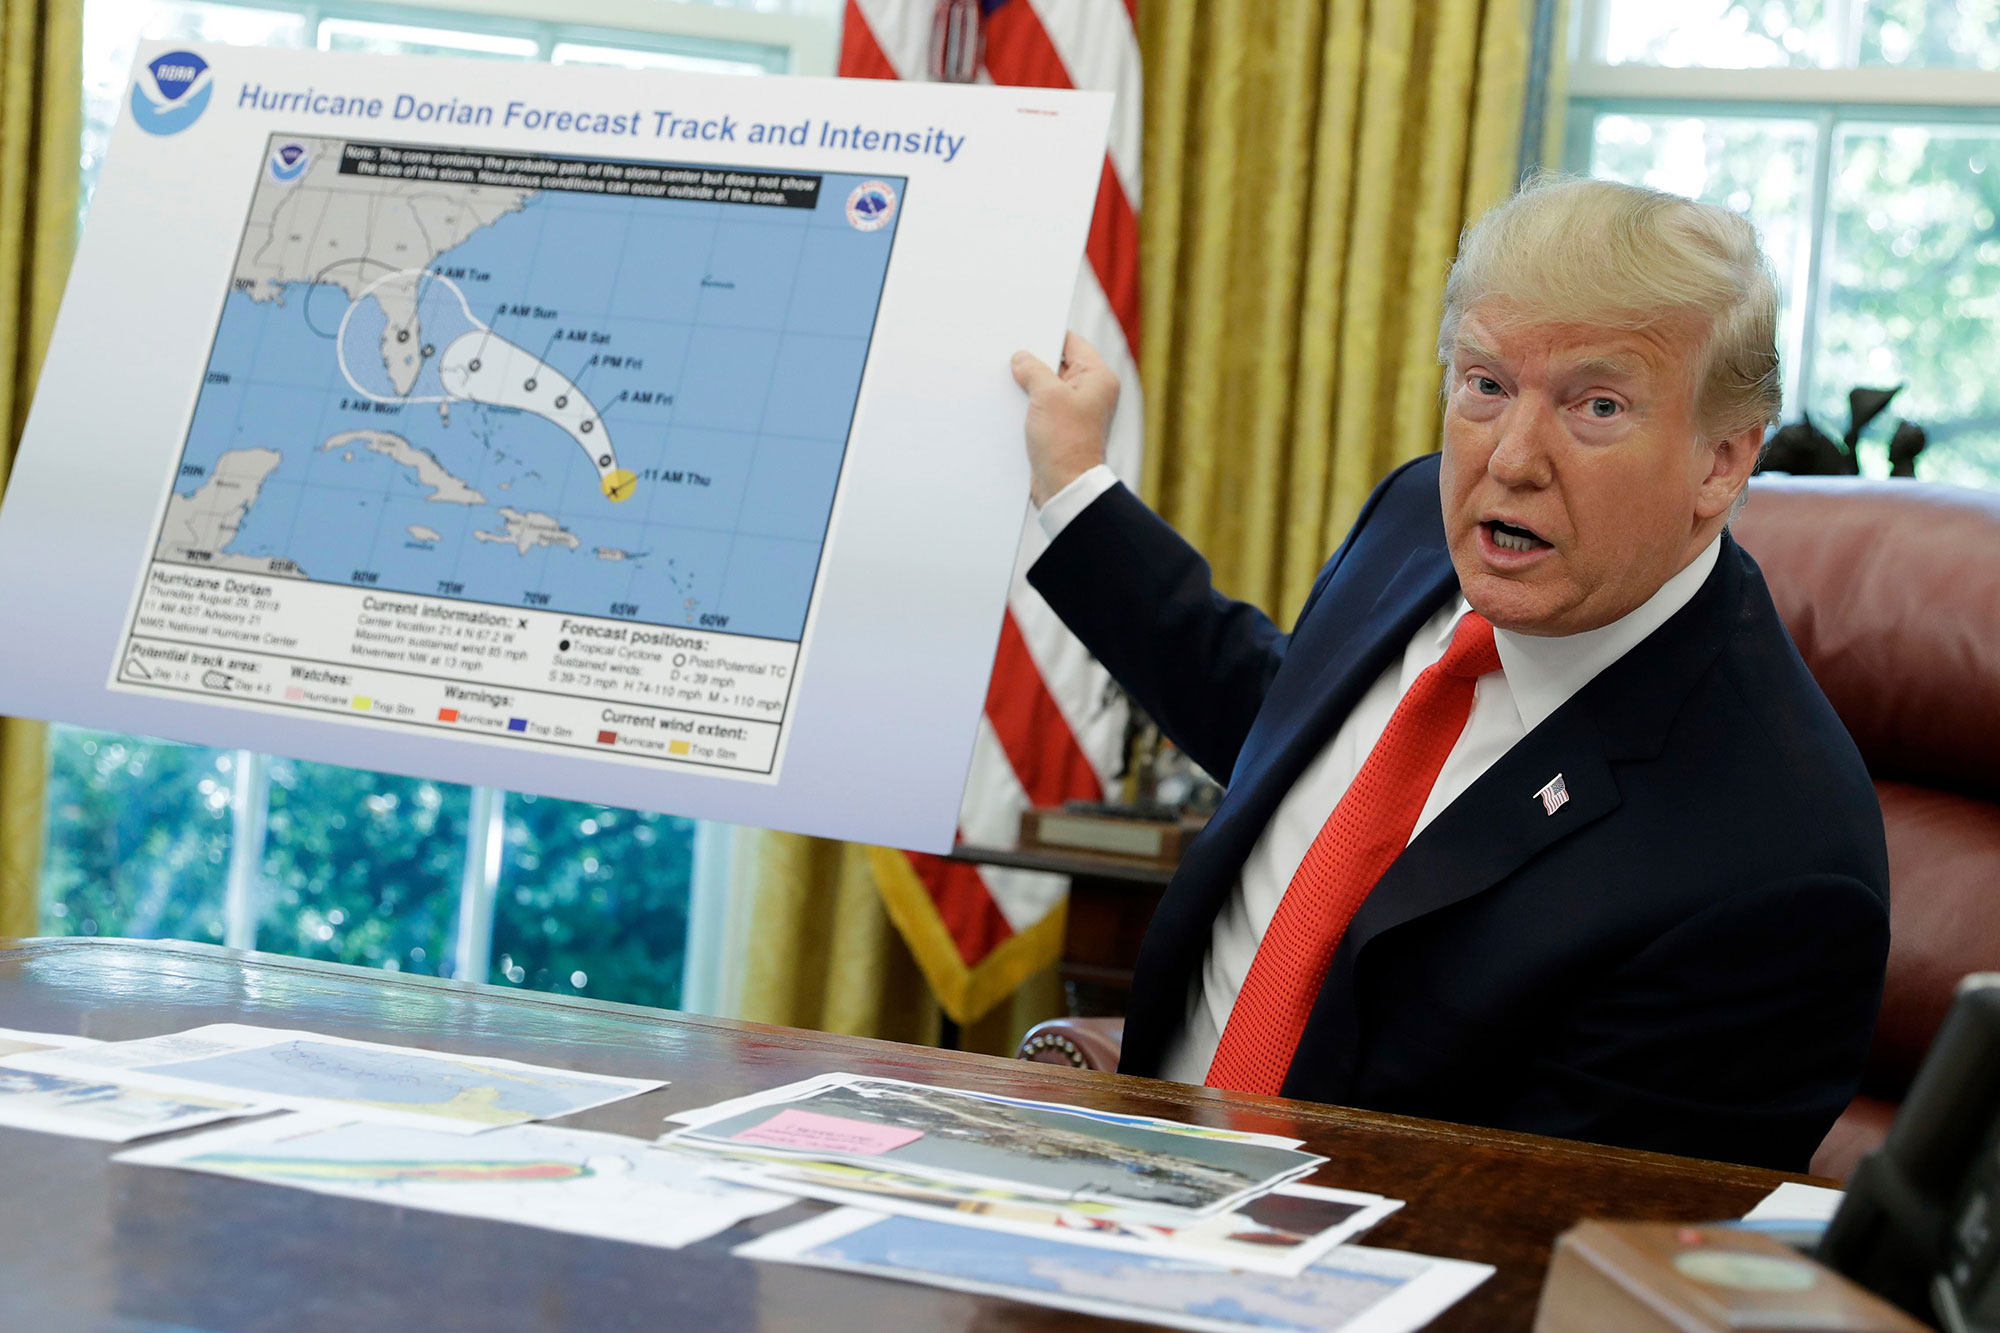 President Donald Trump speaks about Hurricane Dorian as he speaks to reporters in the Oval Office of the White House, in WashingtonTrump, Washington, USA - 04 Sep 2019